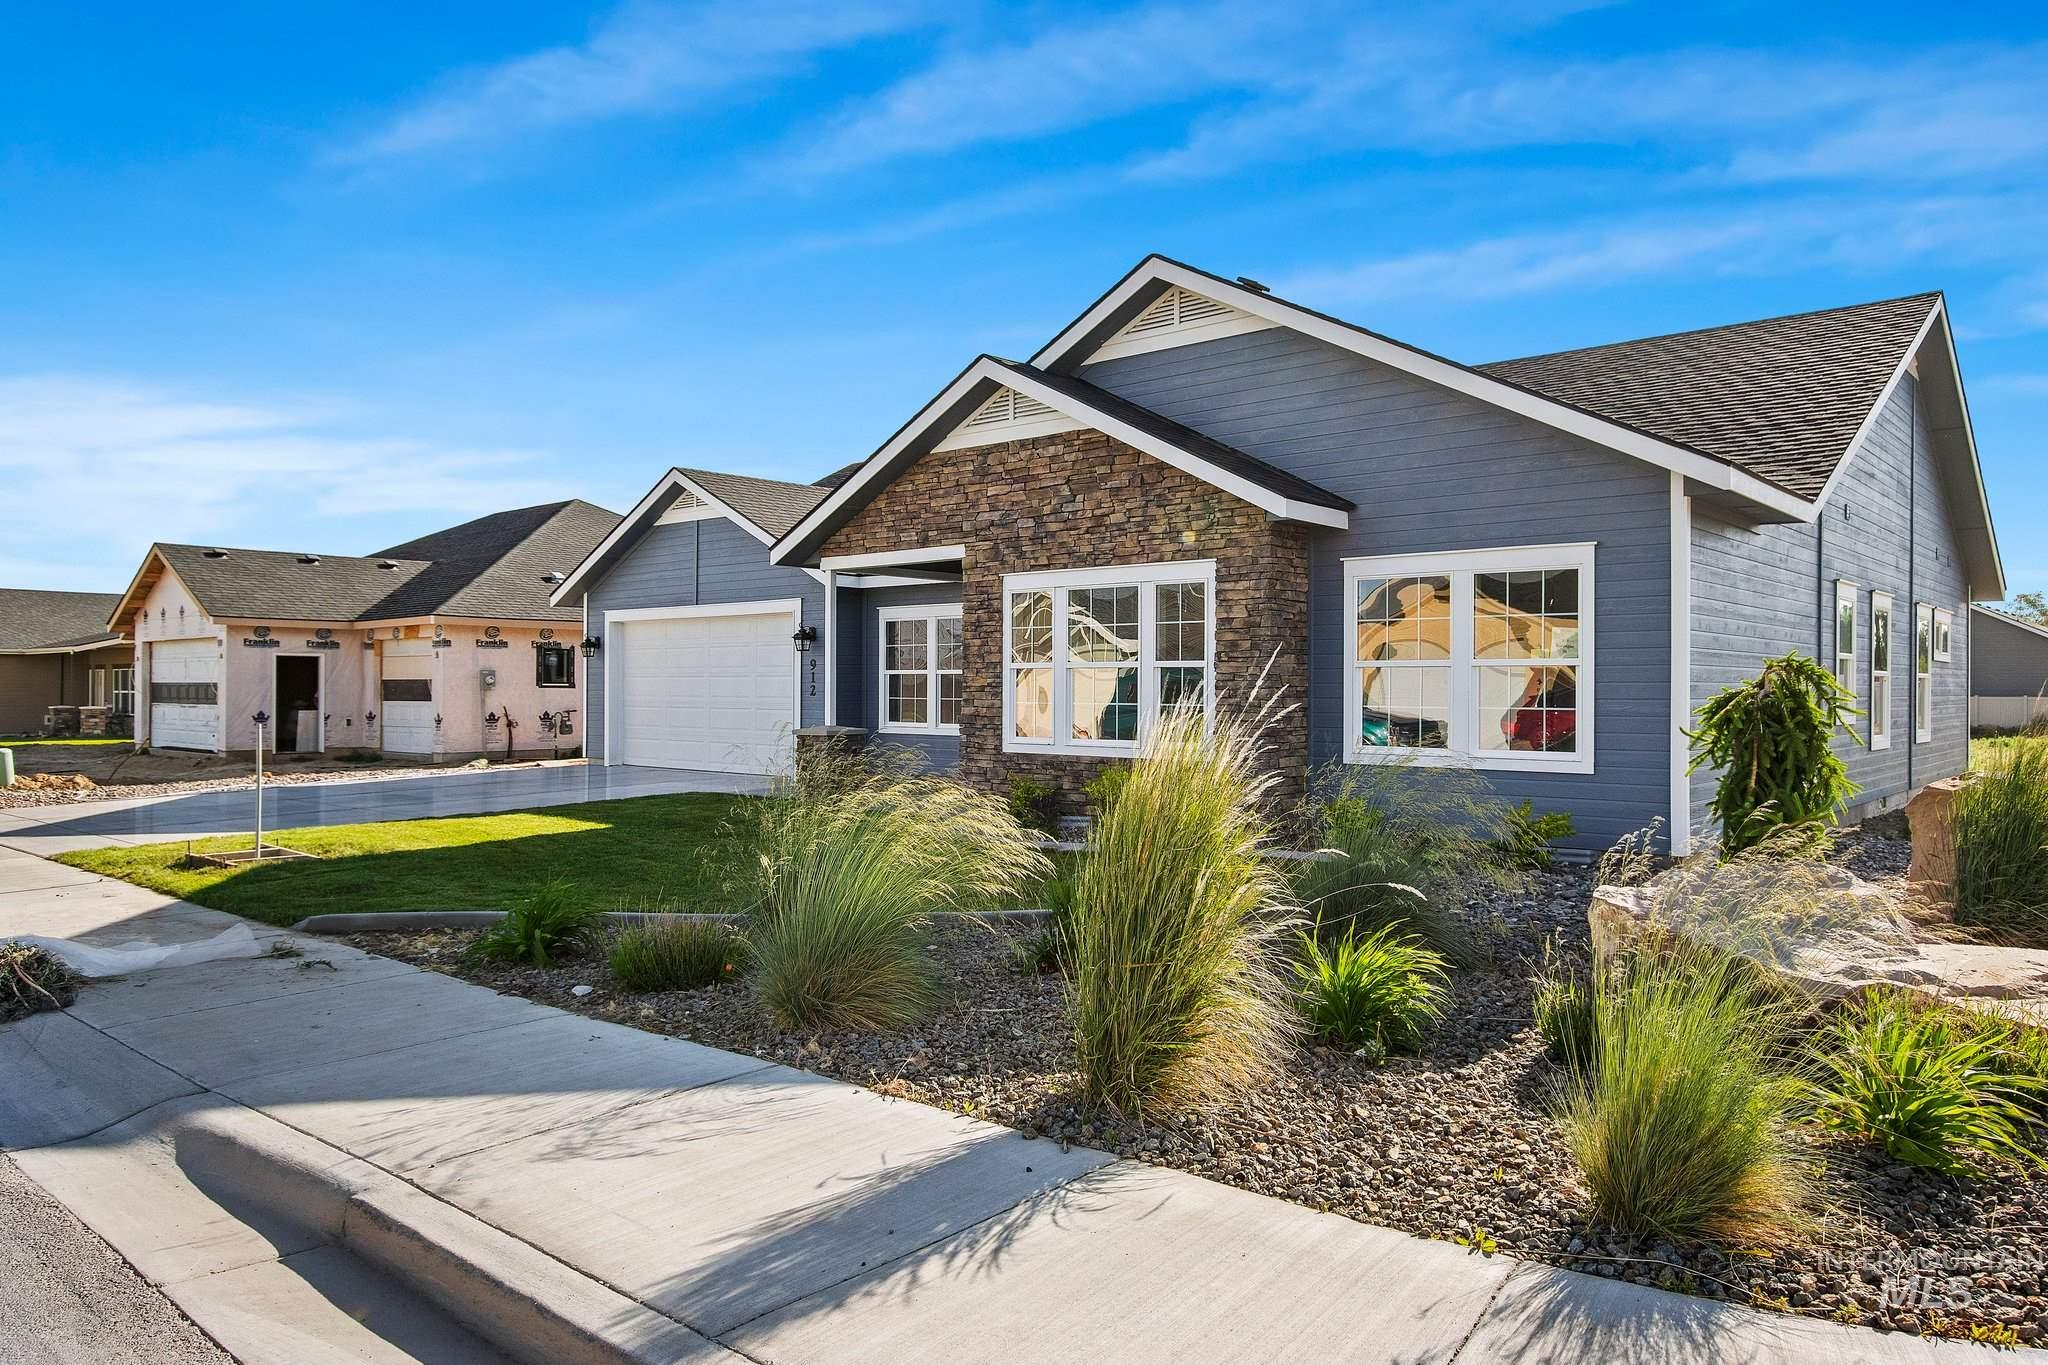 1005 Kenbrook Loop Property Photo - Twin Falls, ID real estate listing